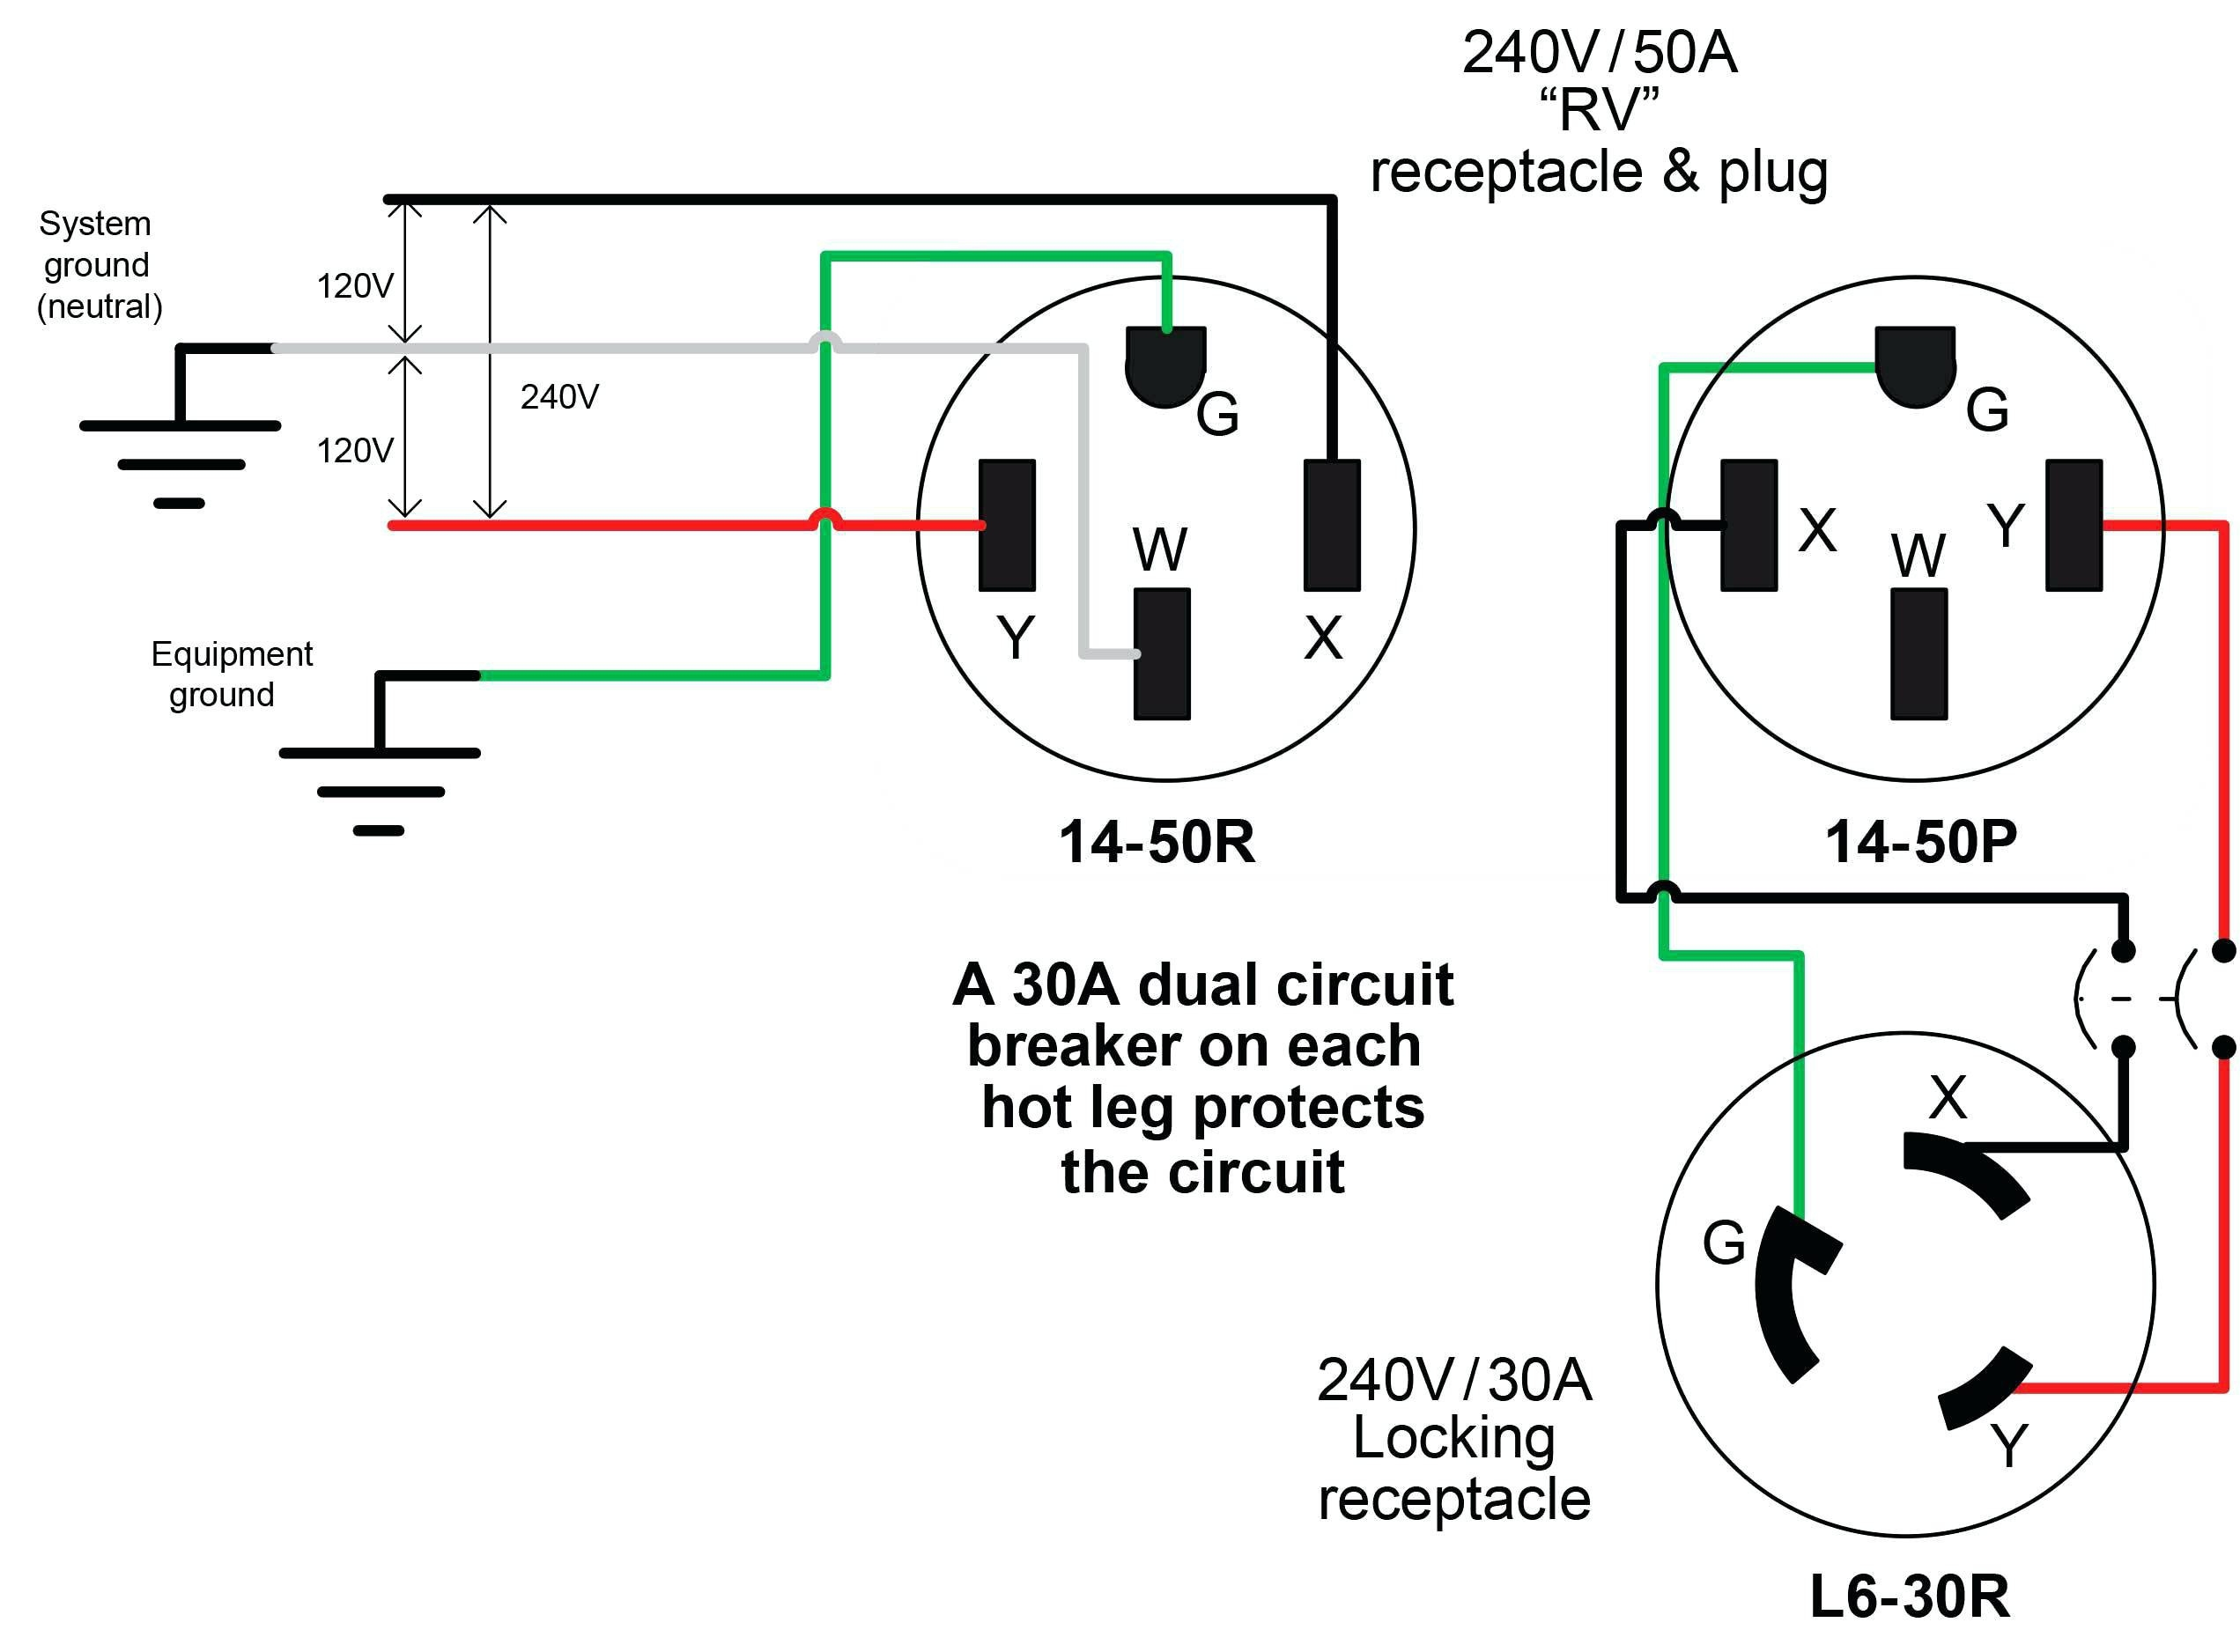 600v Breaker Wiring Diagram Power Circuit